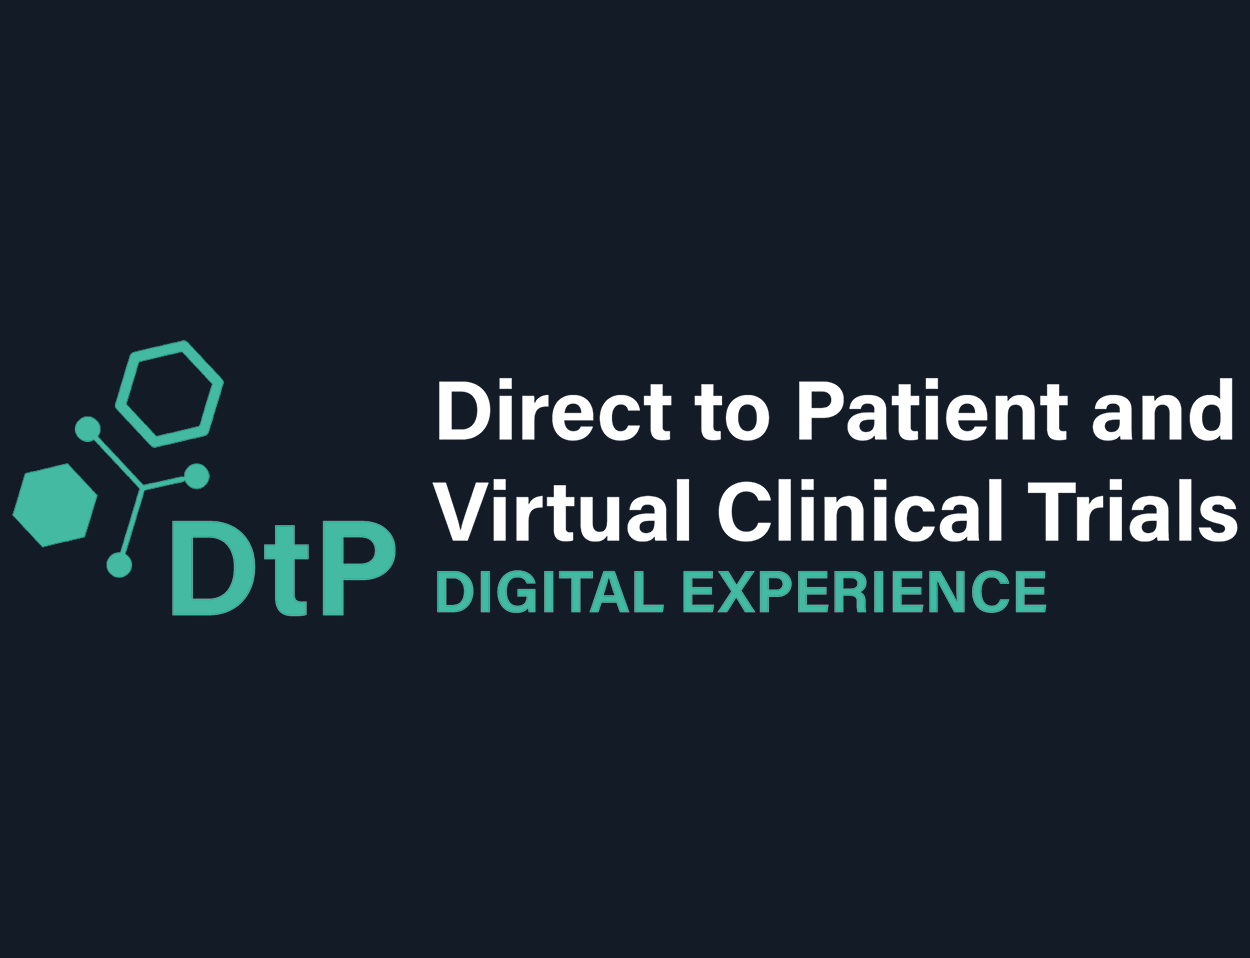 Direct-to-Patient and Virtual Clinical Trials – A Digital Experience